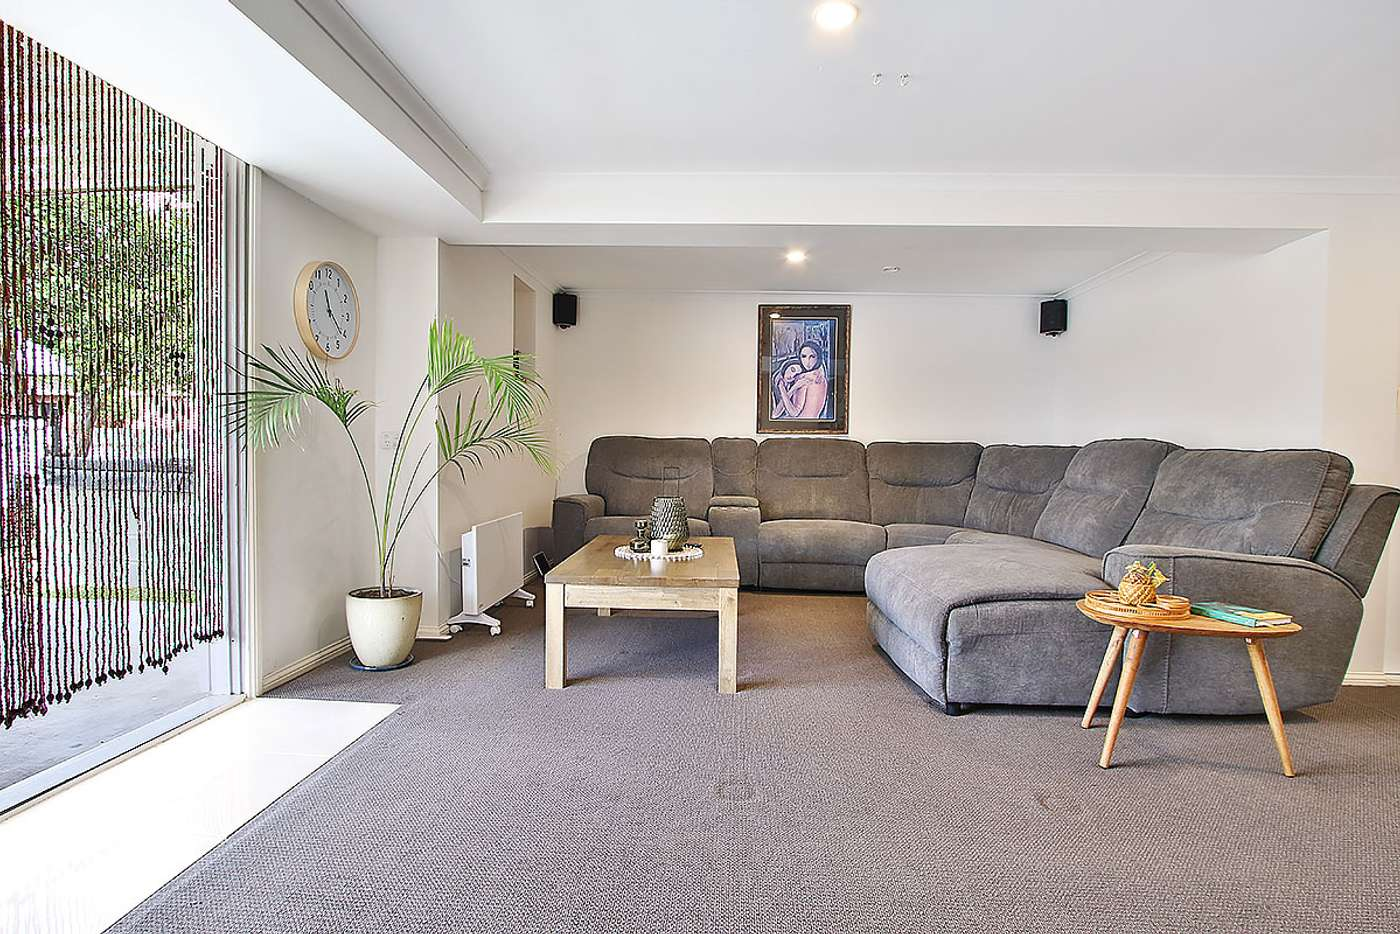 Sixth view of Homely house listing, 260 South Station Road, Raceview QLD 4305